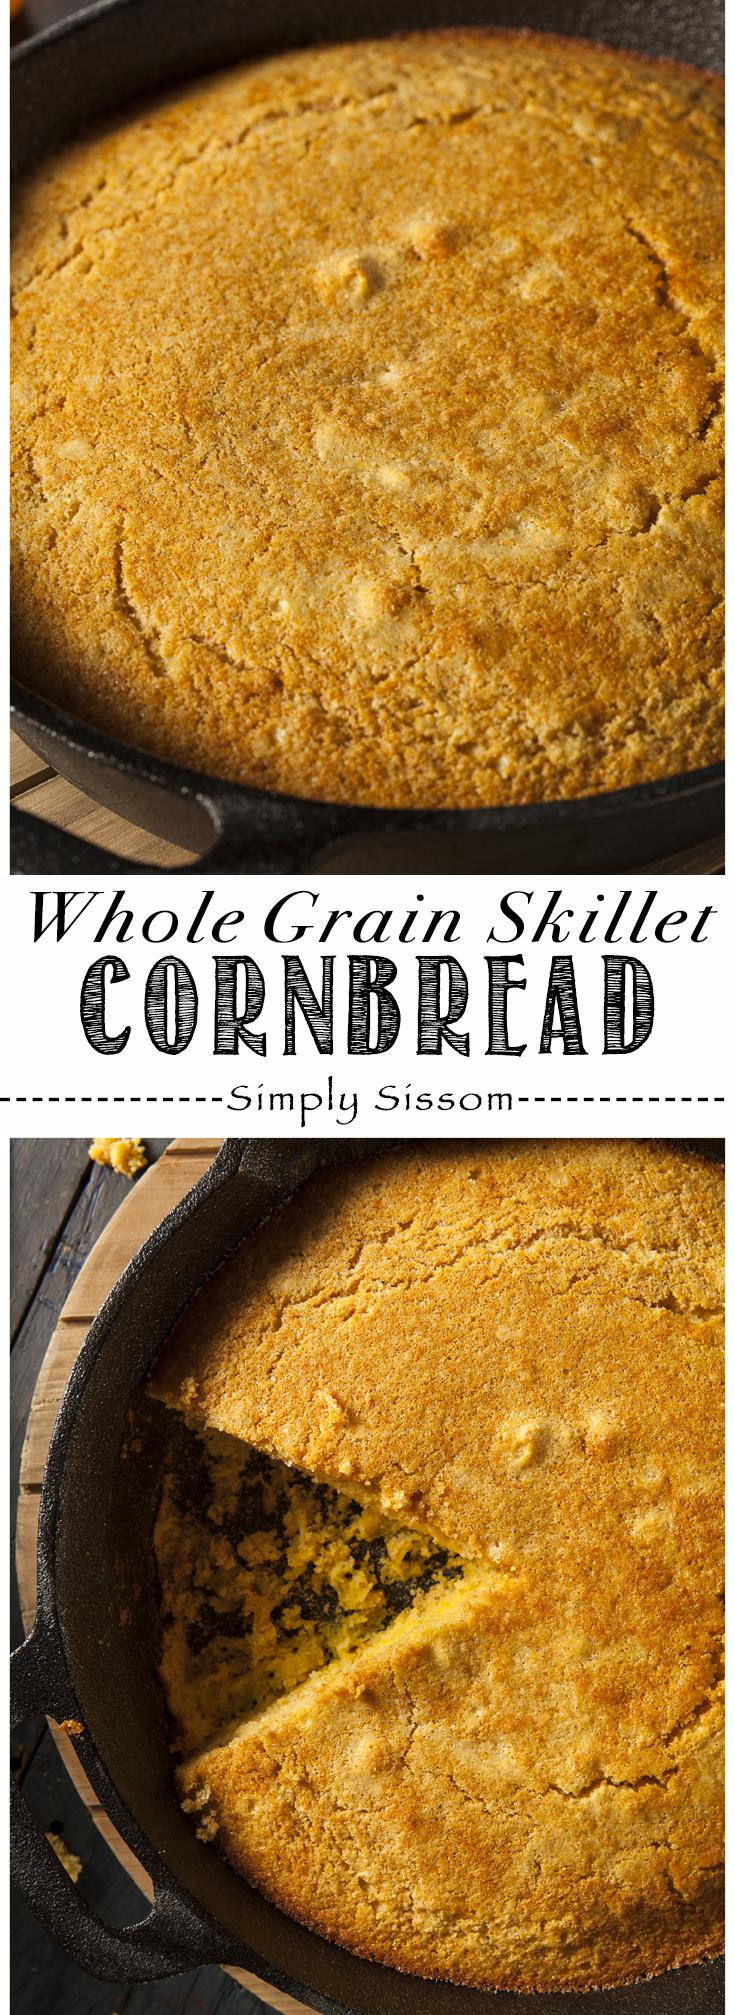 Whole Grain Skillet Cornbread Pinterest